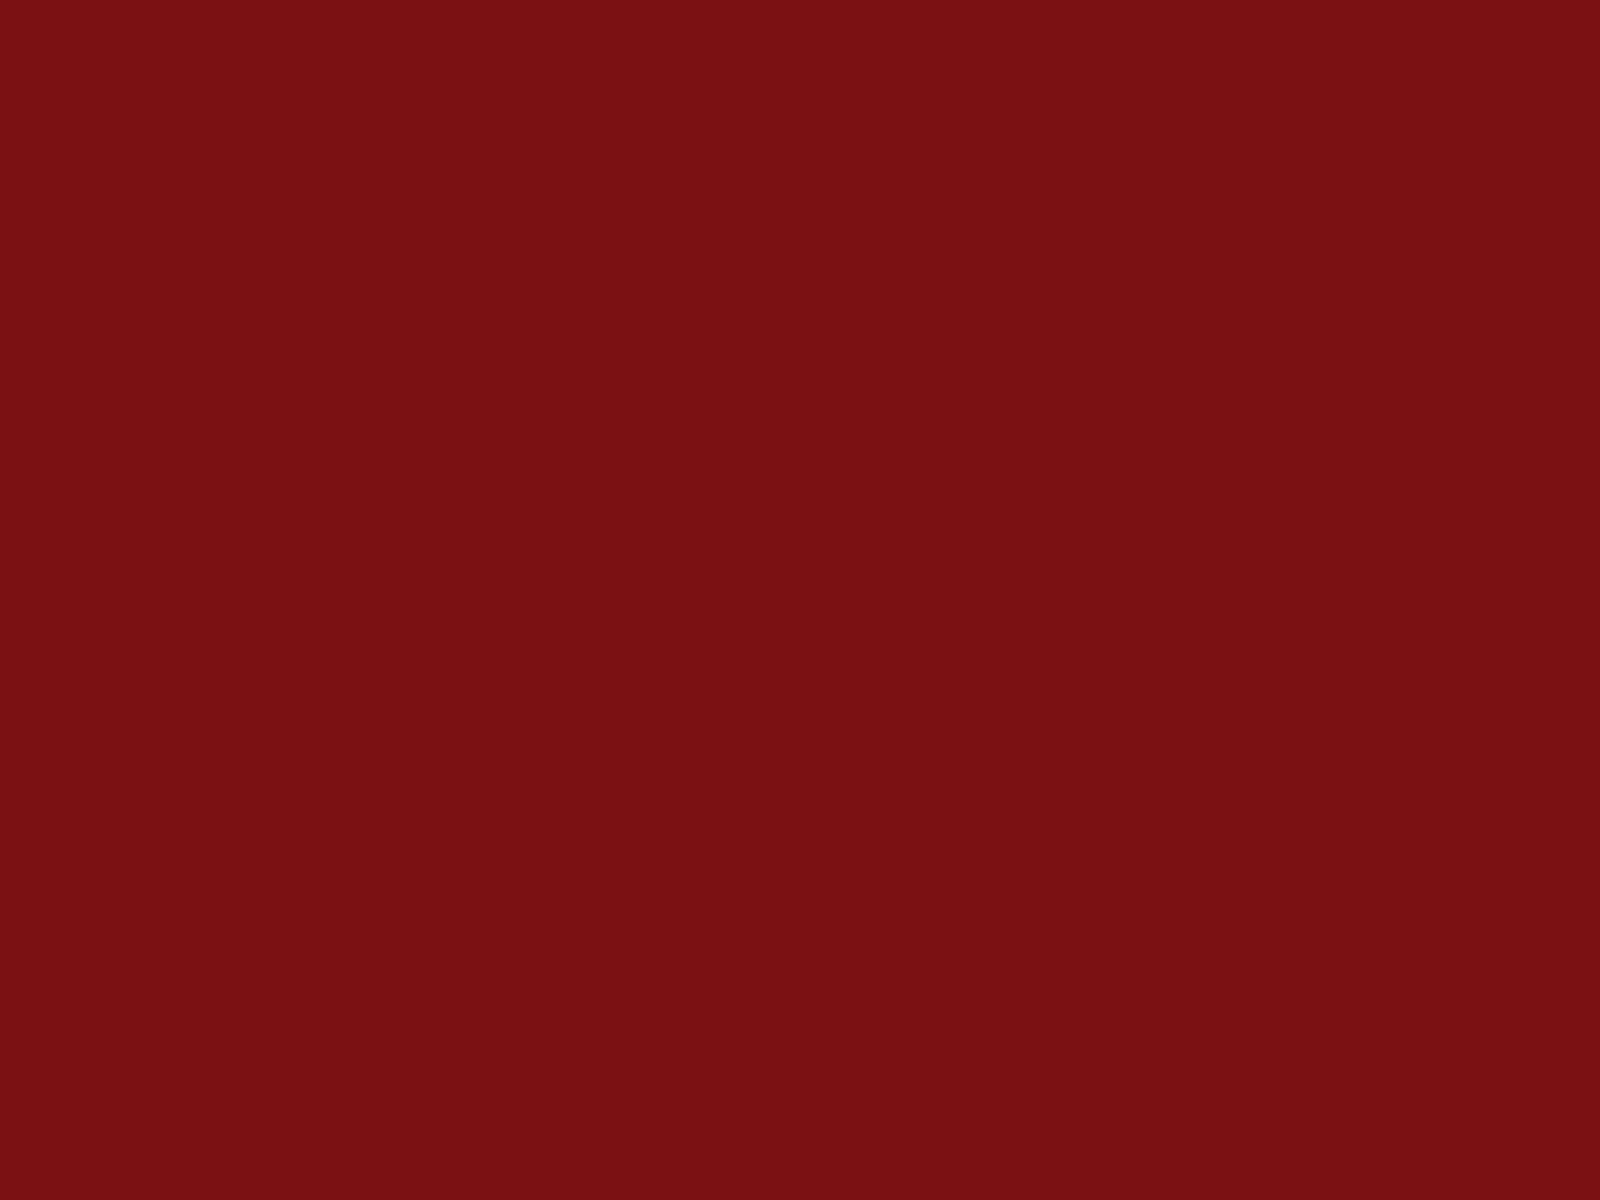 1600x1200 UP Maroon Solid Color Background